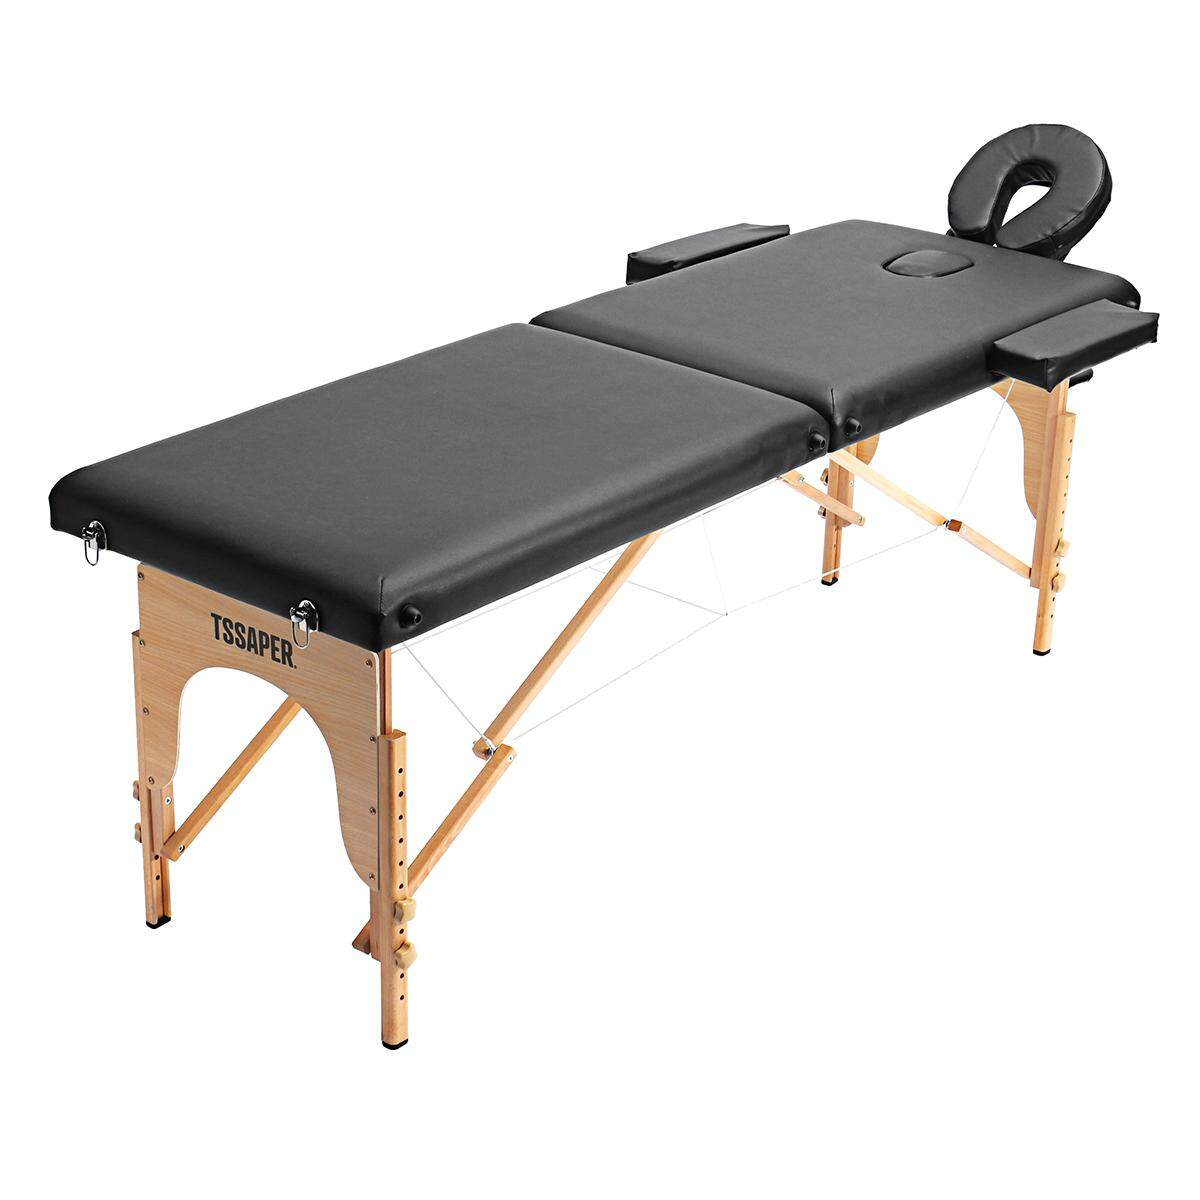 Portable 3 Pad 73 Black Massage Table Massage Bed Fold Case Carry Tattoo Bed Spa Facial Adjustable 58-82cm Height